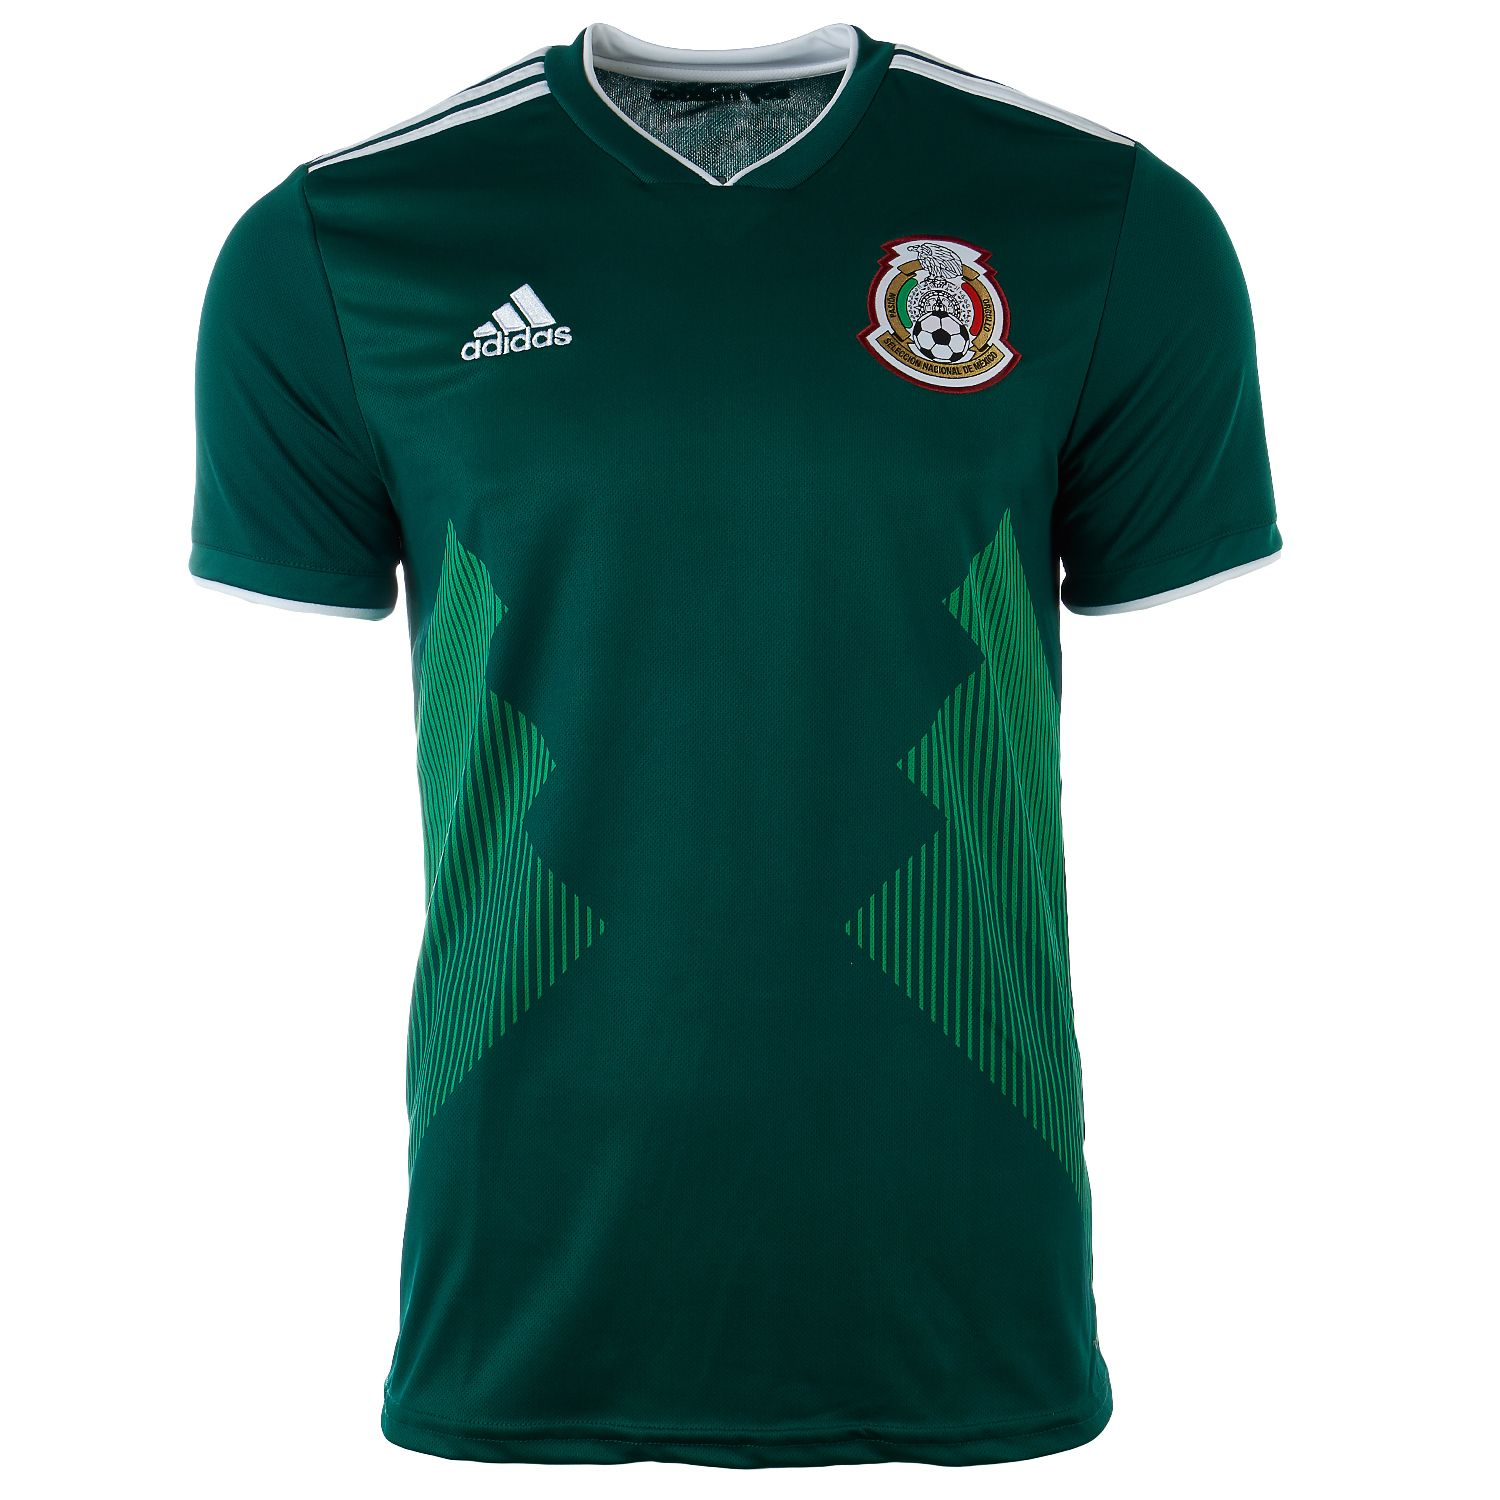 c65c53bf5f8 2018 Mexico World Cup Jersey | FÚTBOL | Mexico soccer jersey, Mexico ...